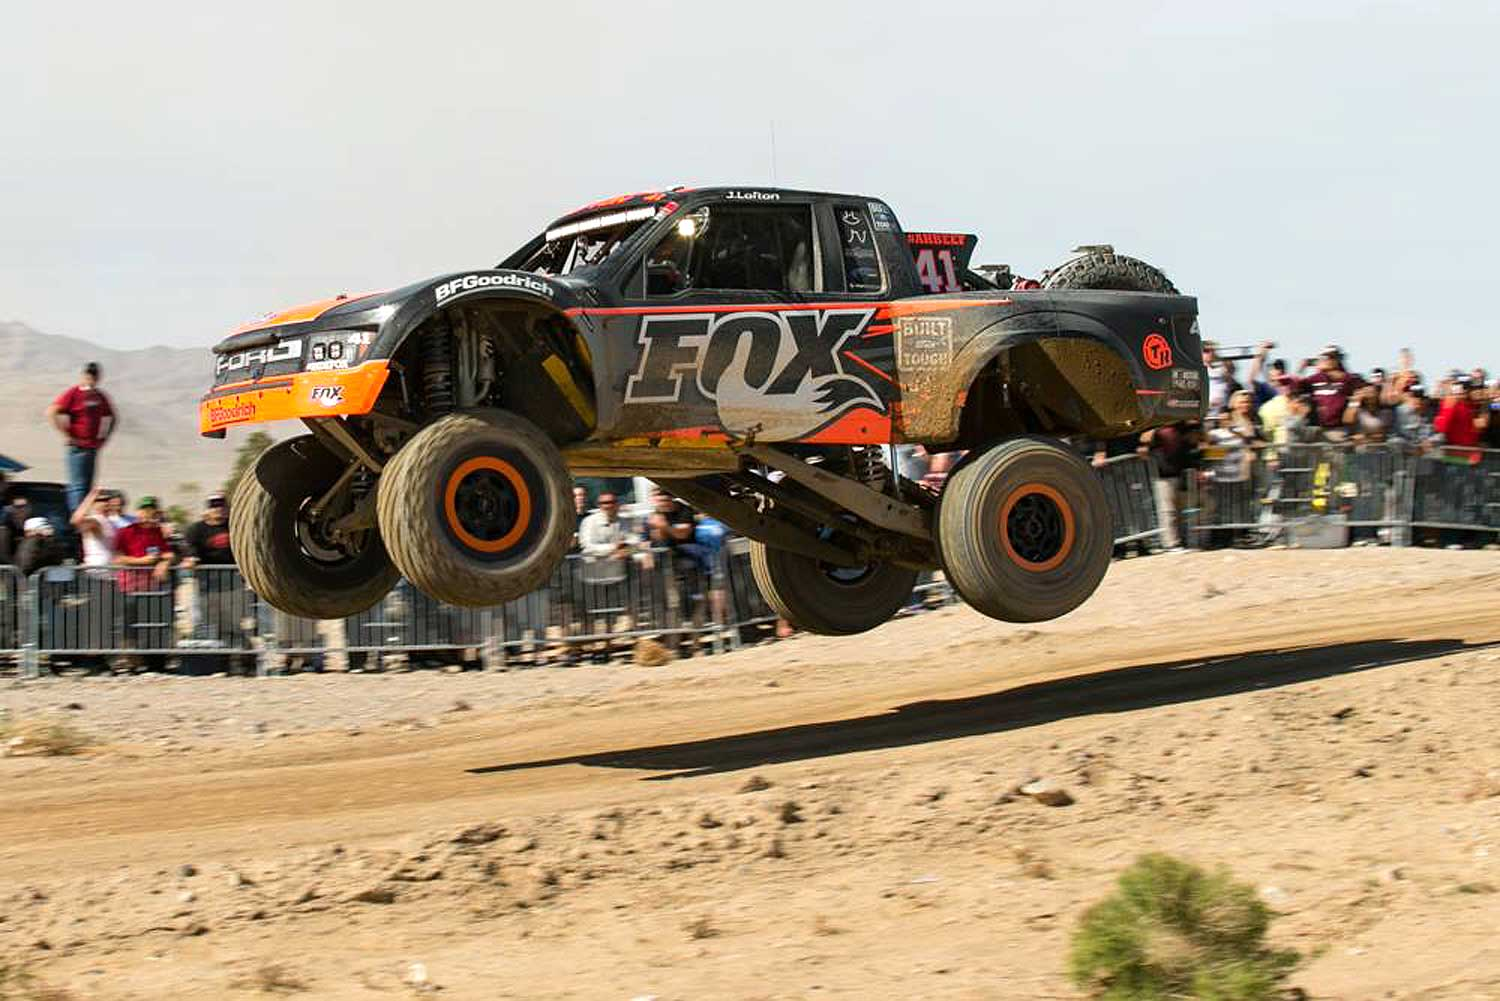 The Mint 400: FOX offers 10 000 USD for Overall Winner of